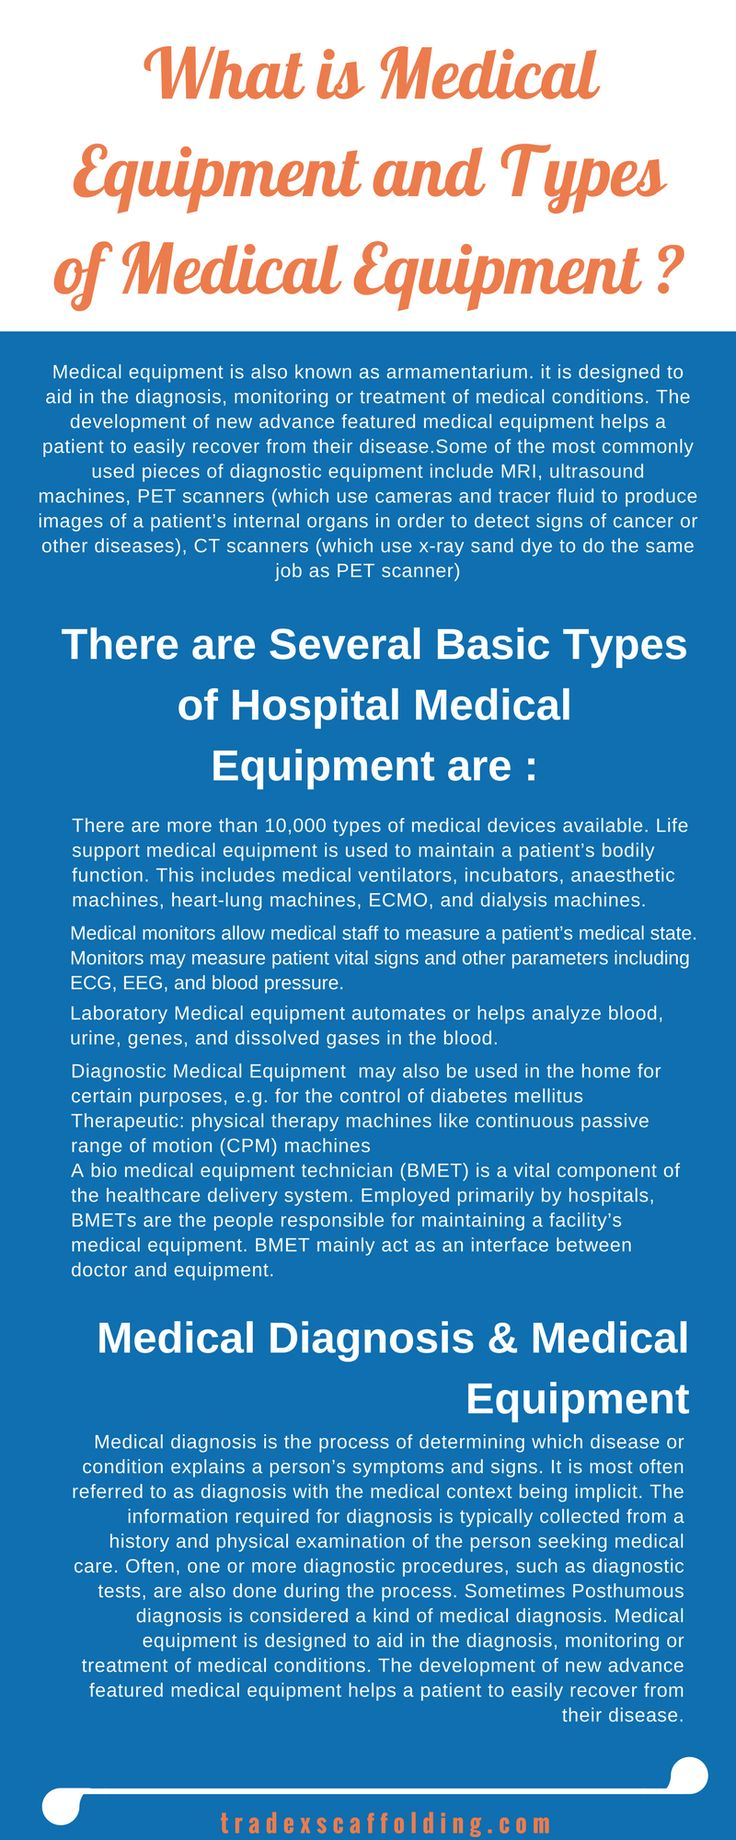 Medical equipment is also known as armamentarium. it is designed to aid in the diagnosis, monitoring or treatment of medical conditions. The development of new advance featured medical equipment helps a patient to easily recover from their disease.Some of the most commonly used pieces of diagnostic equipment include MRI, ultrasound machines, PET scanners , CT scanners